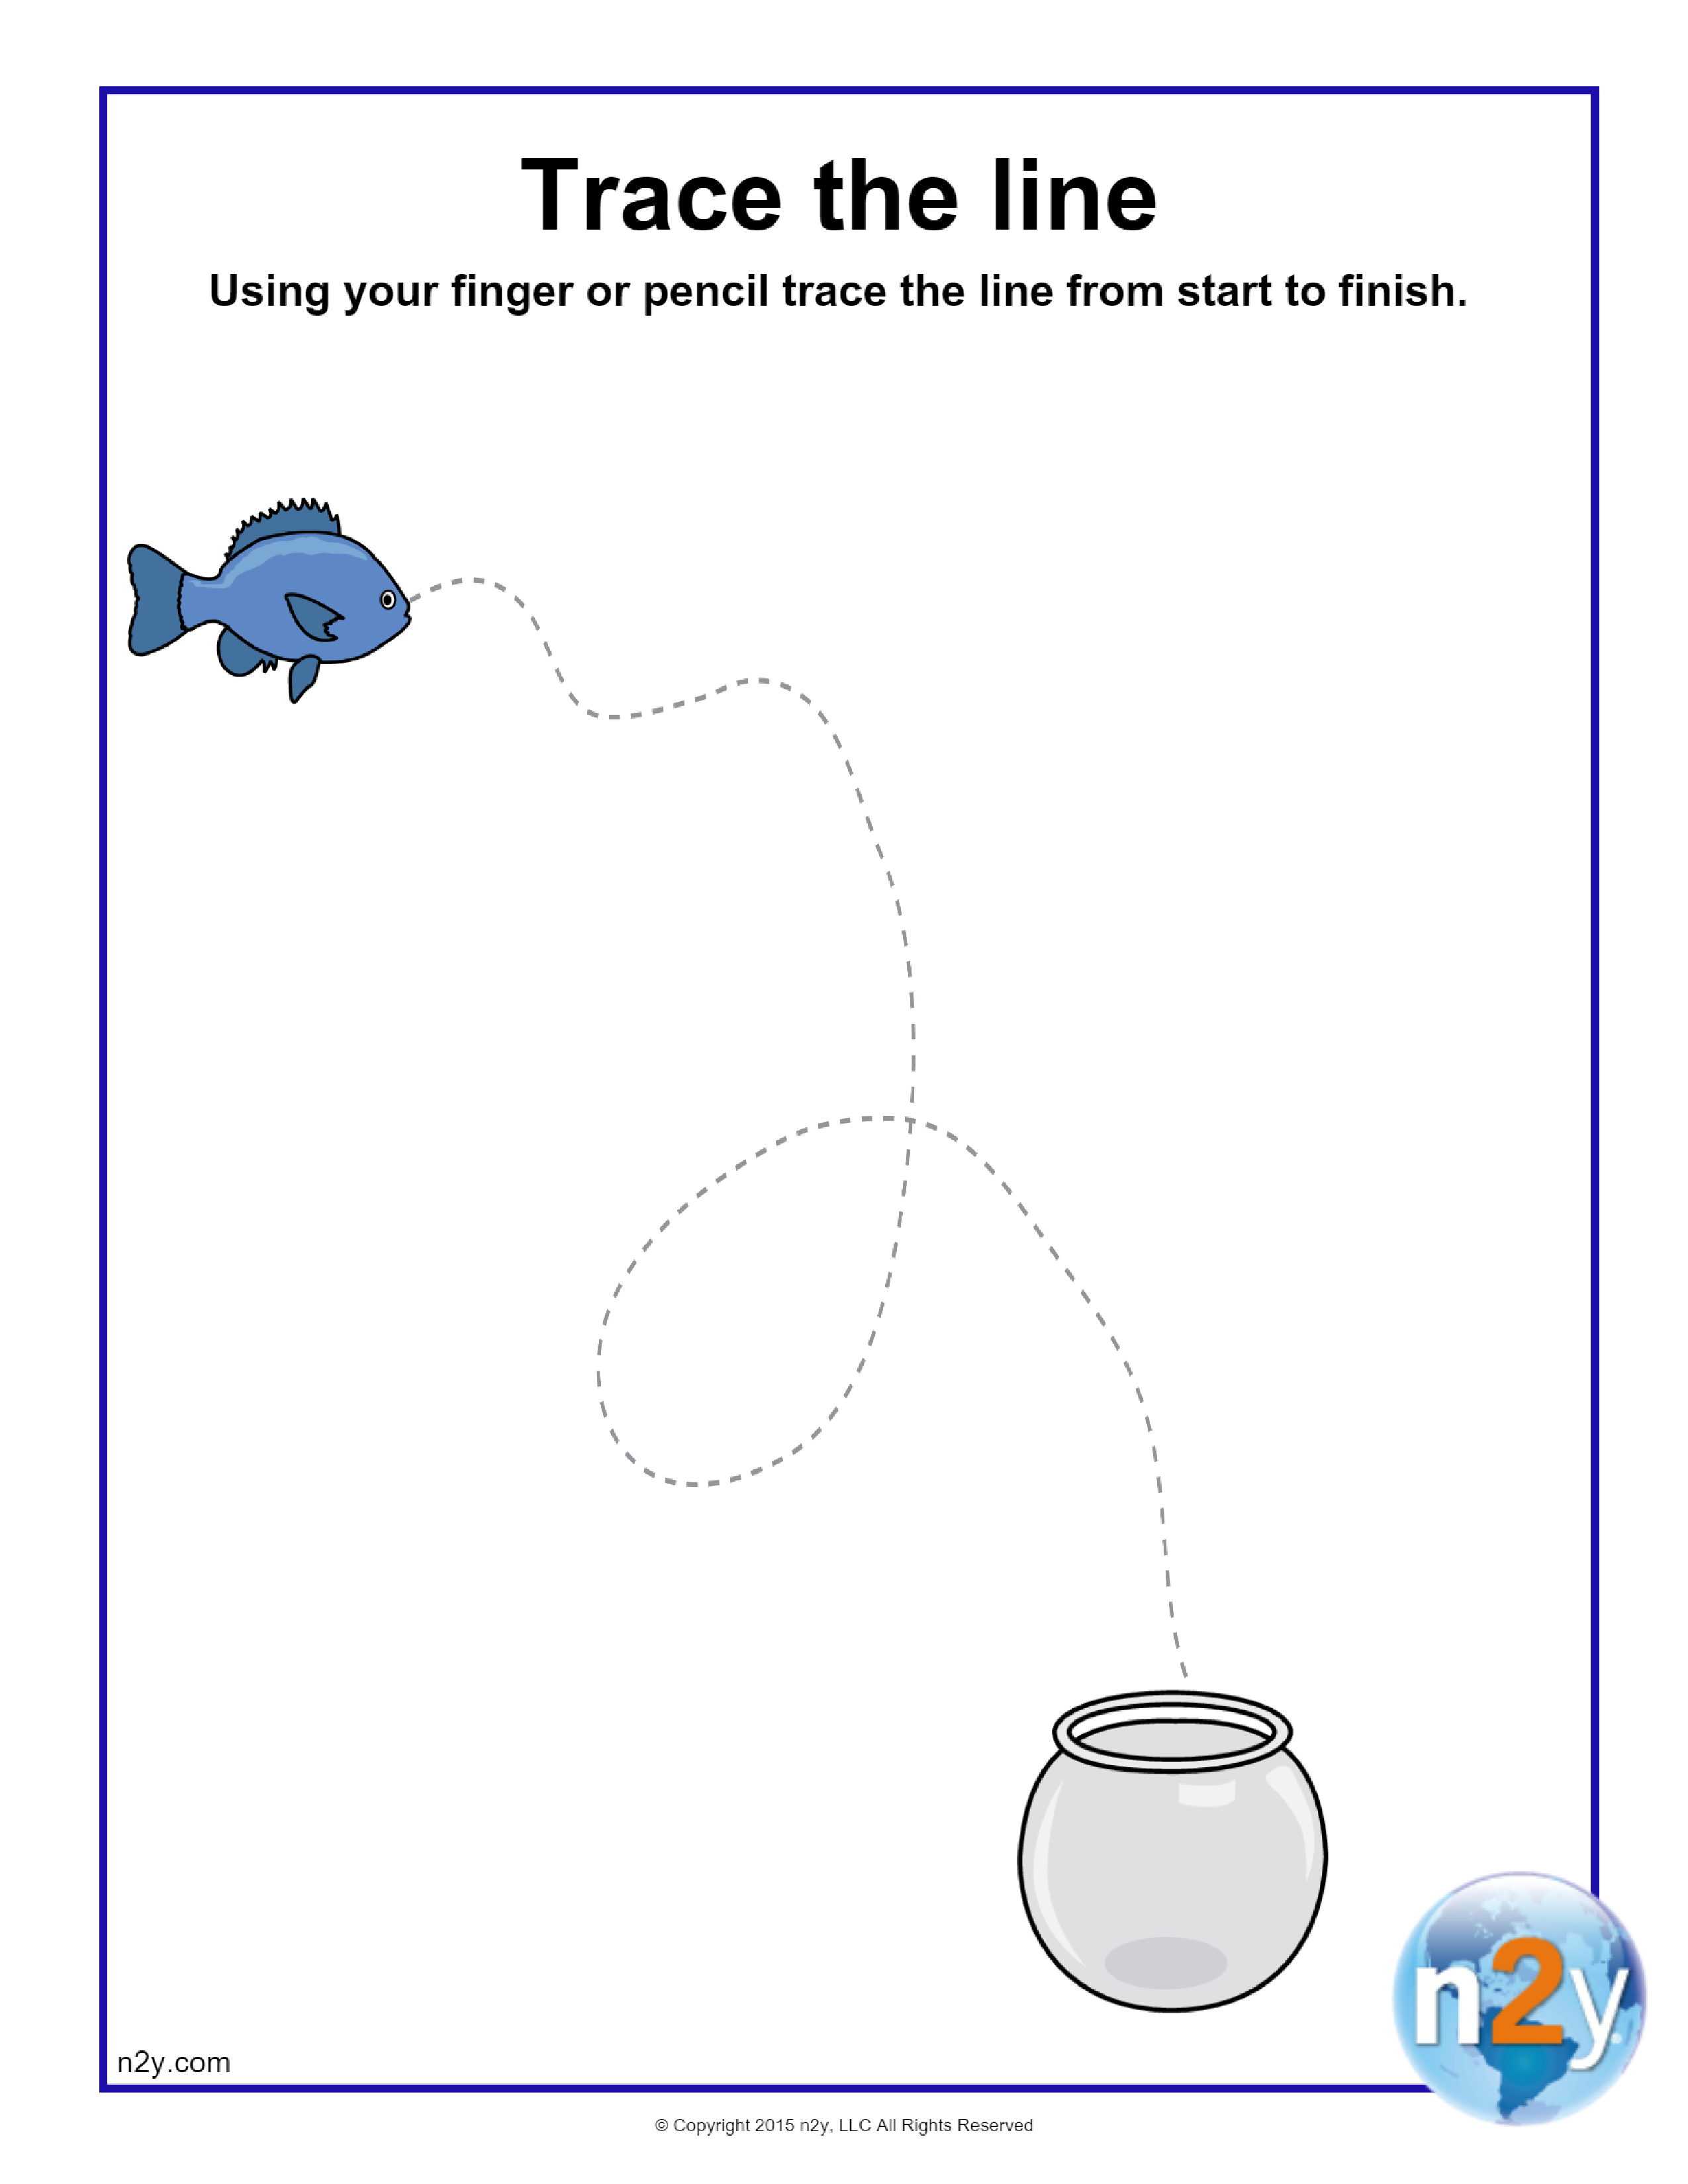 Put The Fish Back In Its Bowl By Tracing The Line